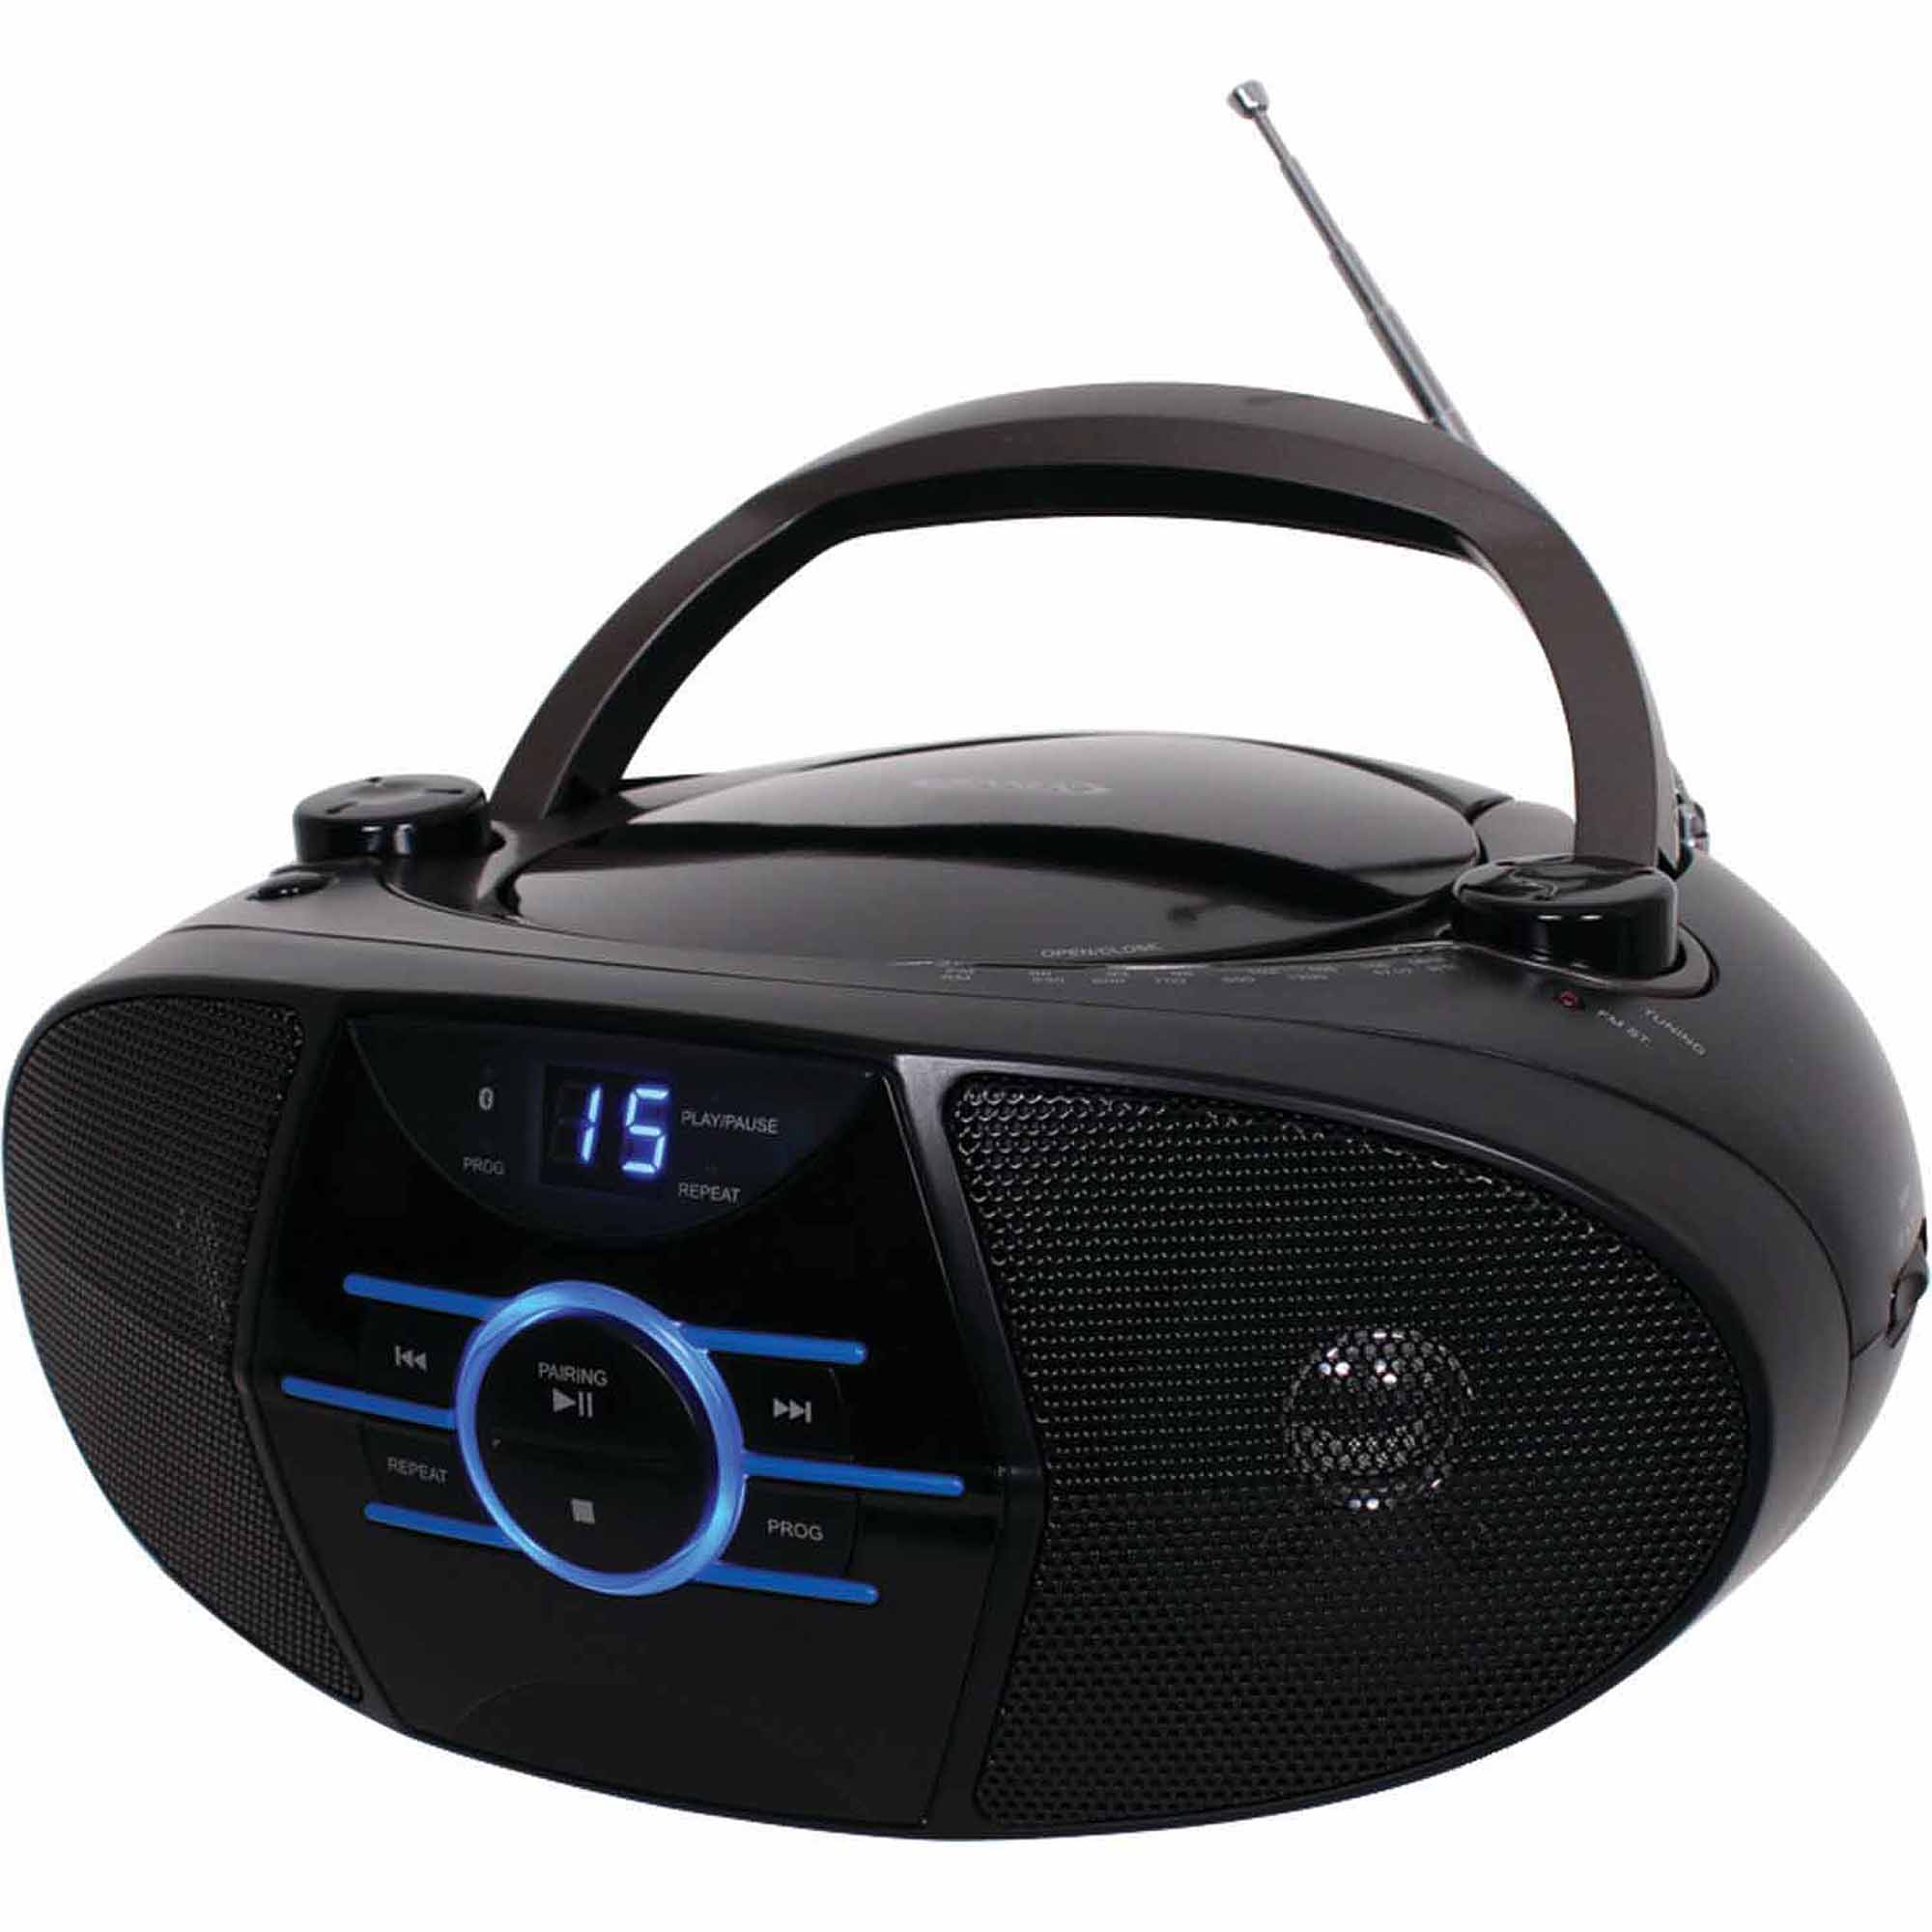 Jensen CD-560 Portable Stereo CD Player with AM/FM Stereo Radio and Bluetooth